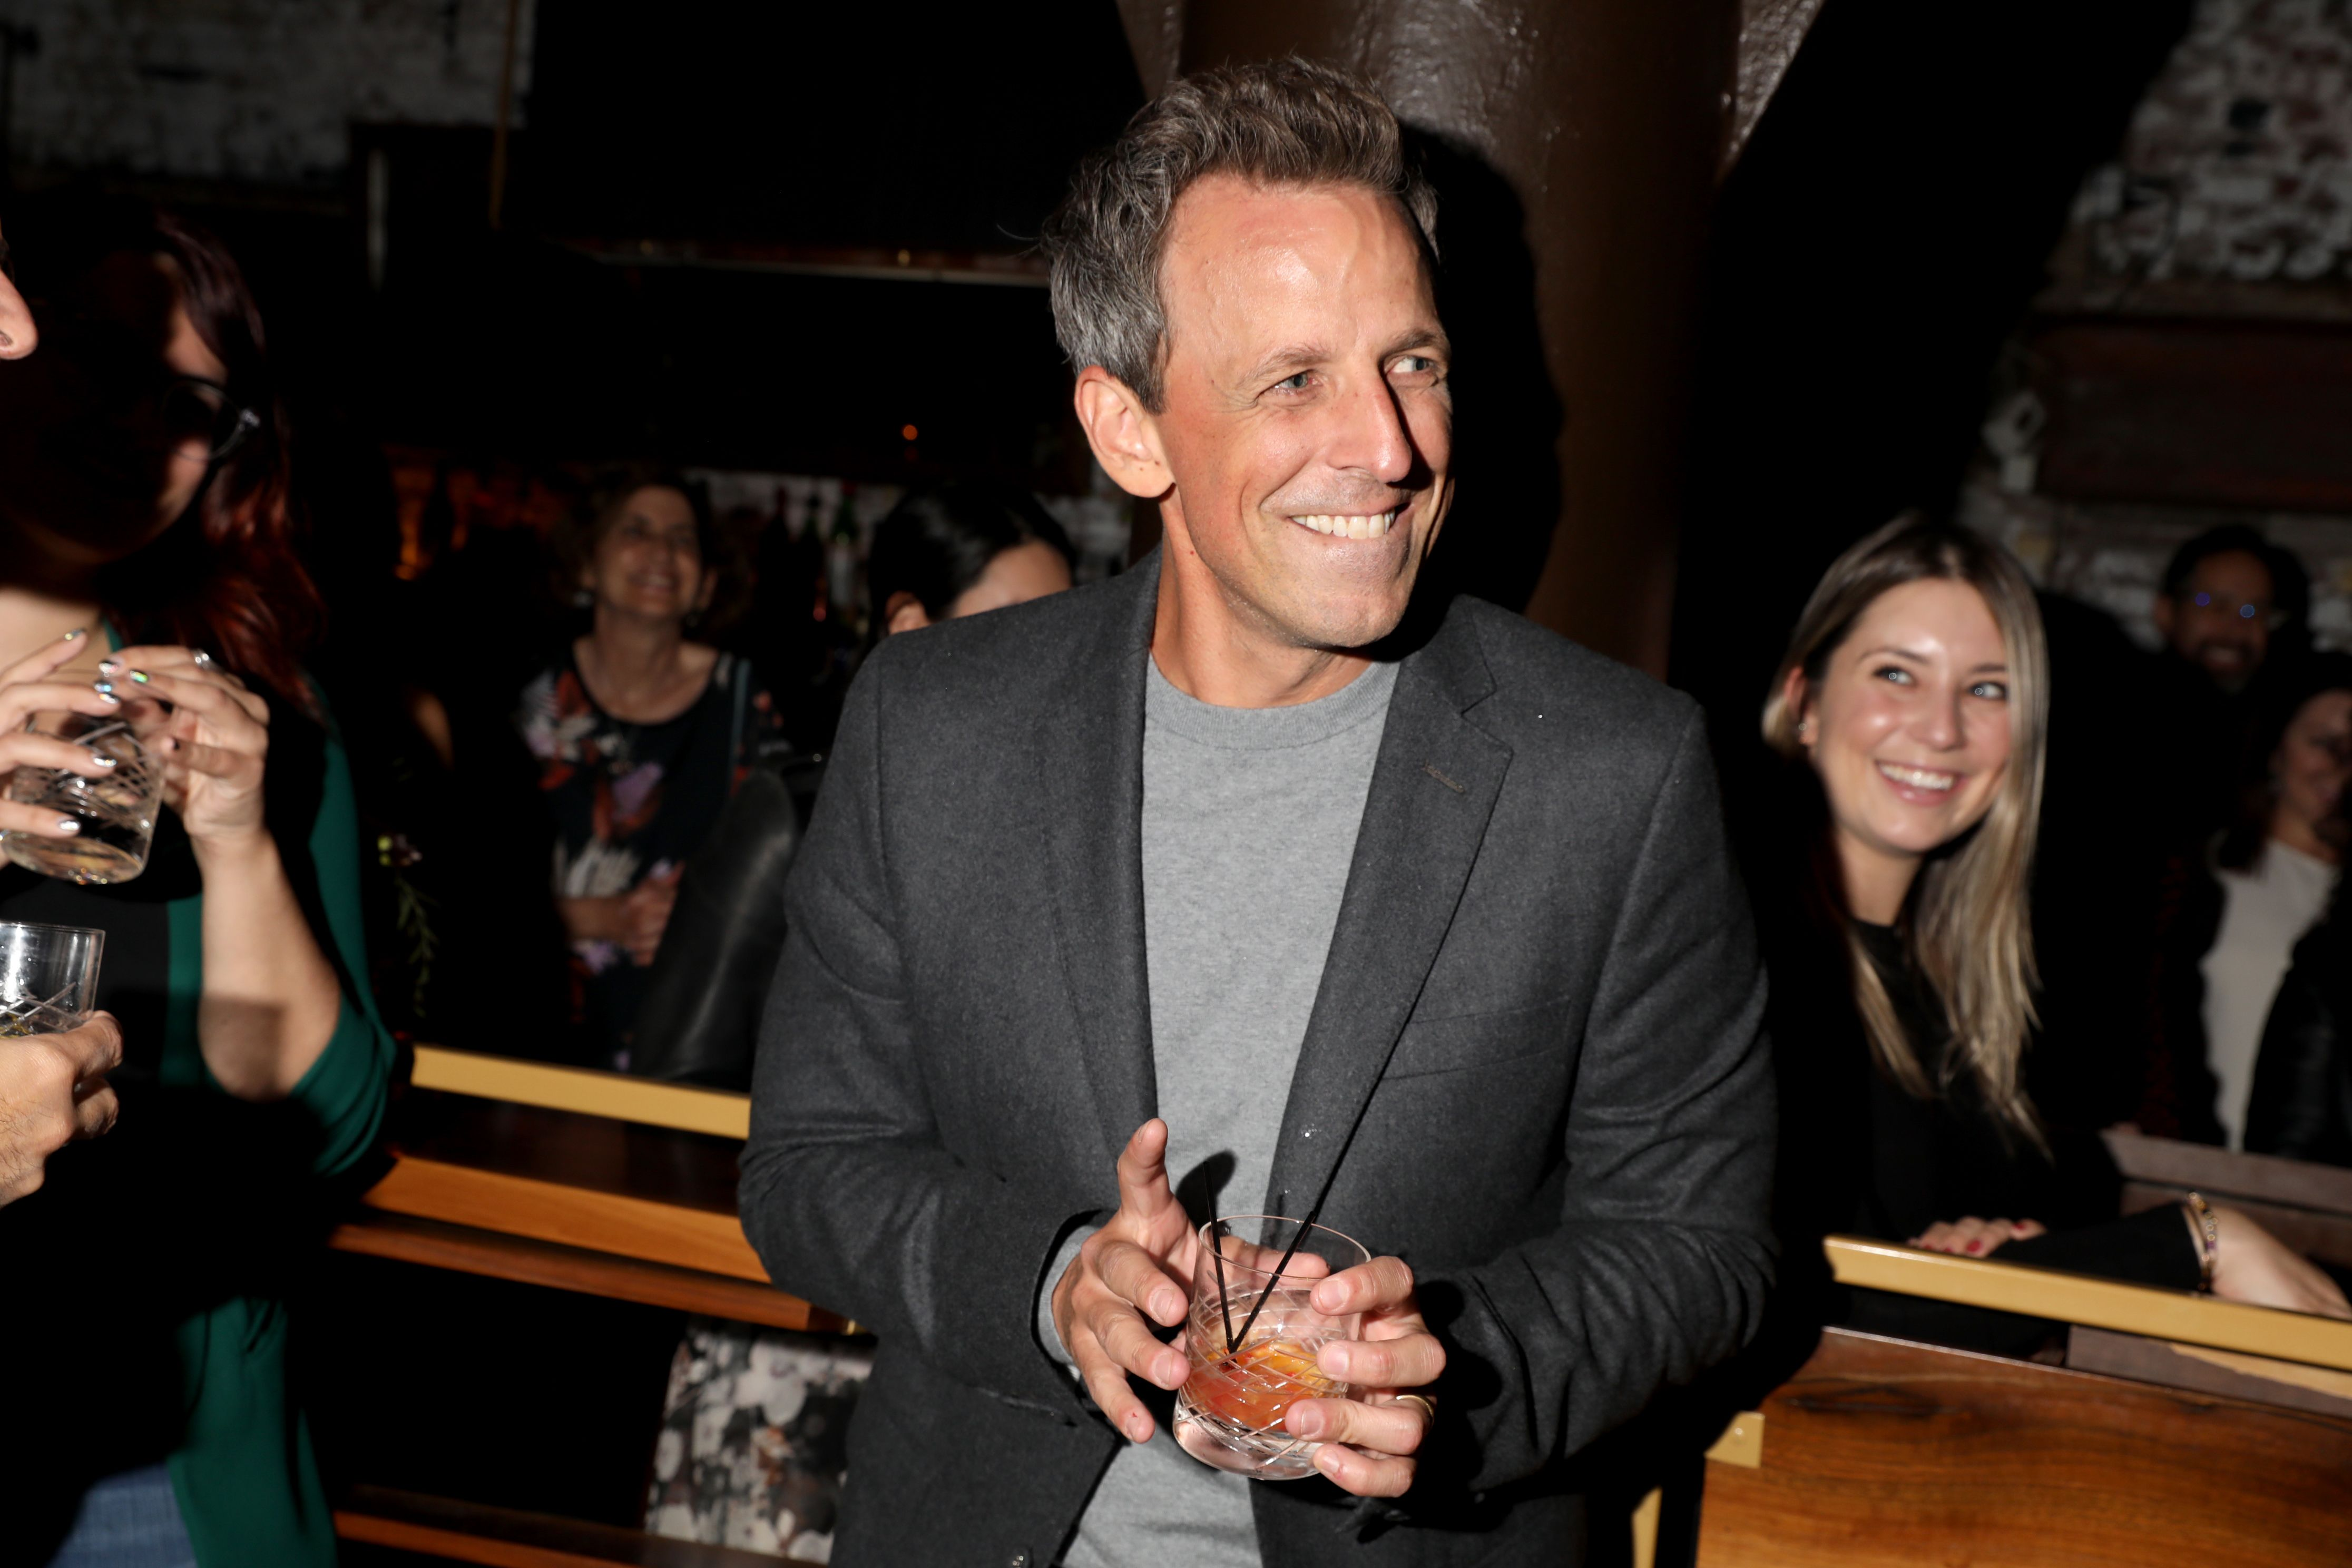 Seth Meyers Is Not a Cuck. But He Is King of 'Late Night.'